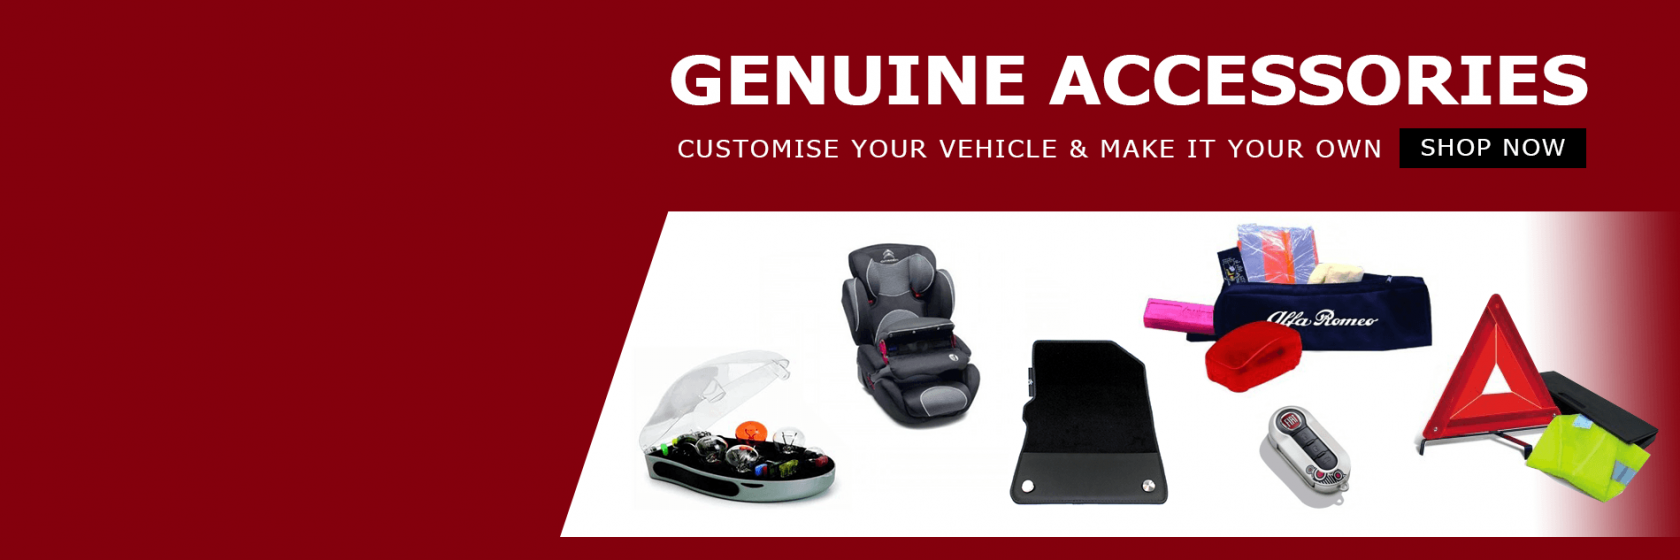 Genuine Accessories at Desira Parts